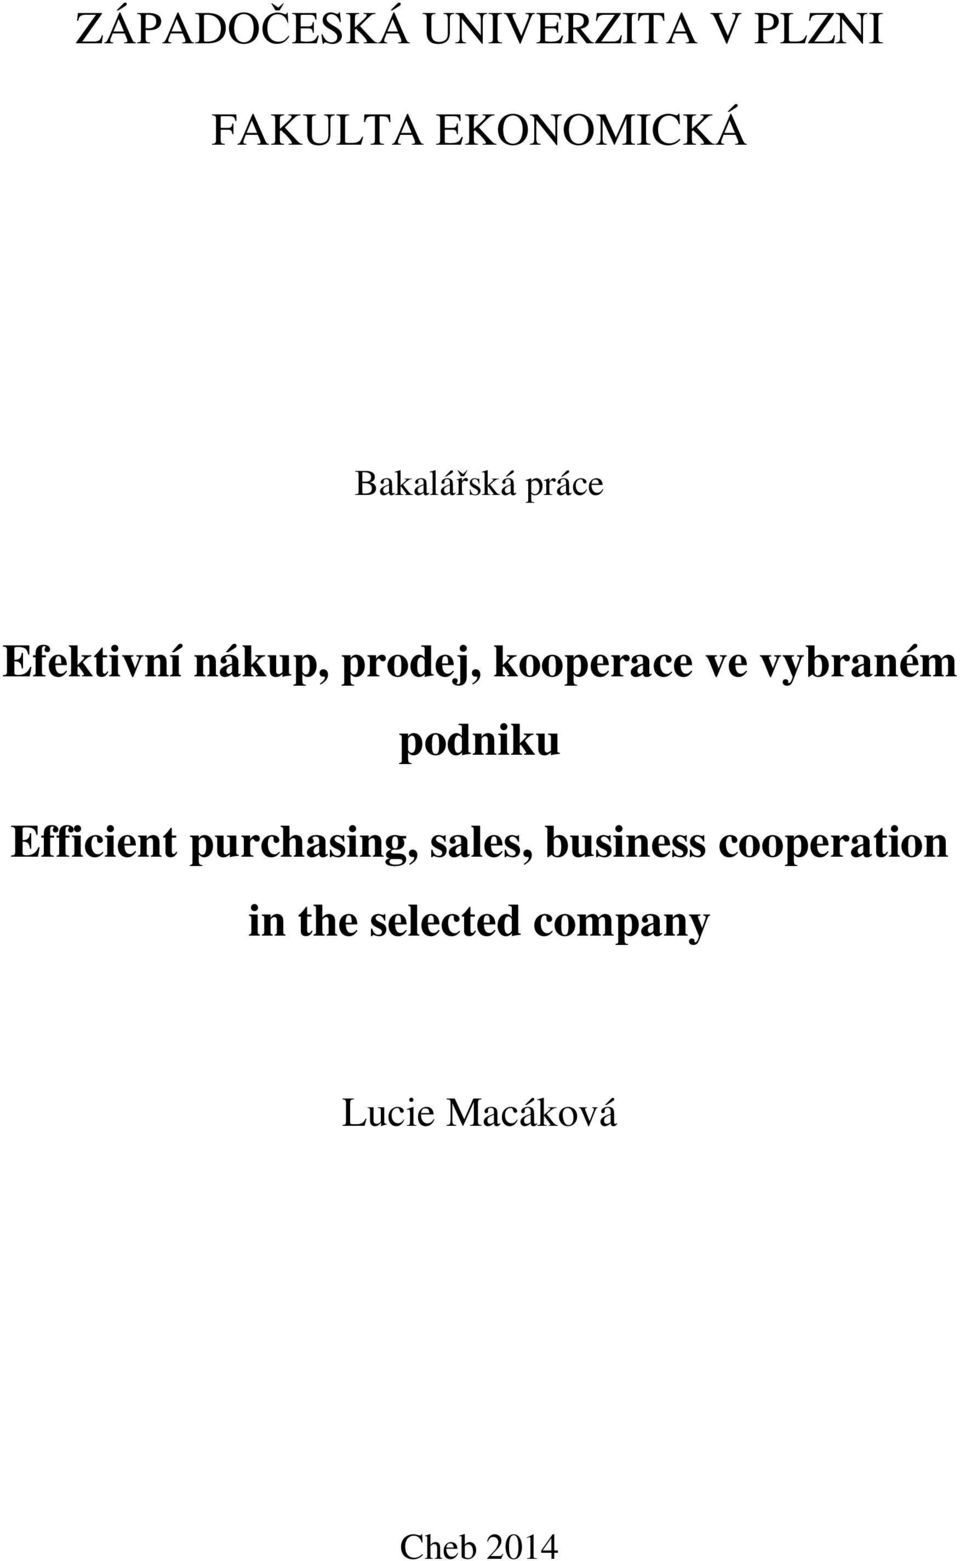 vybraném podniku Efficient purchasing, sales, business